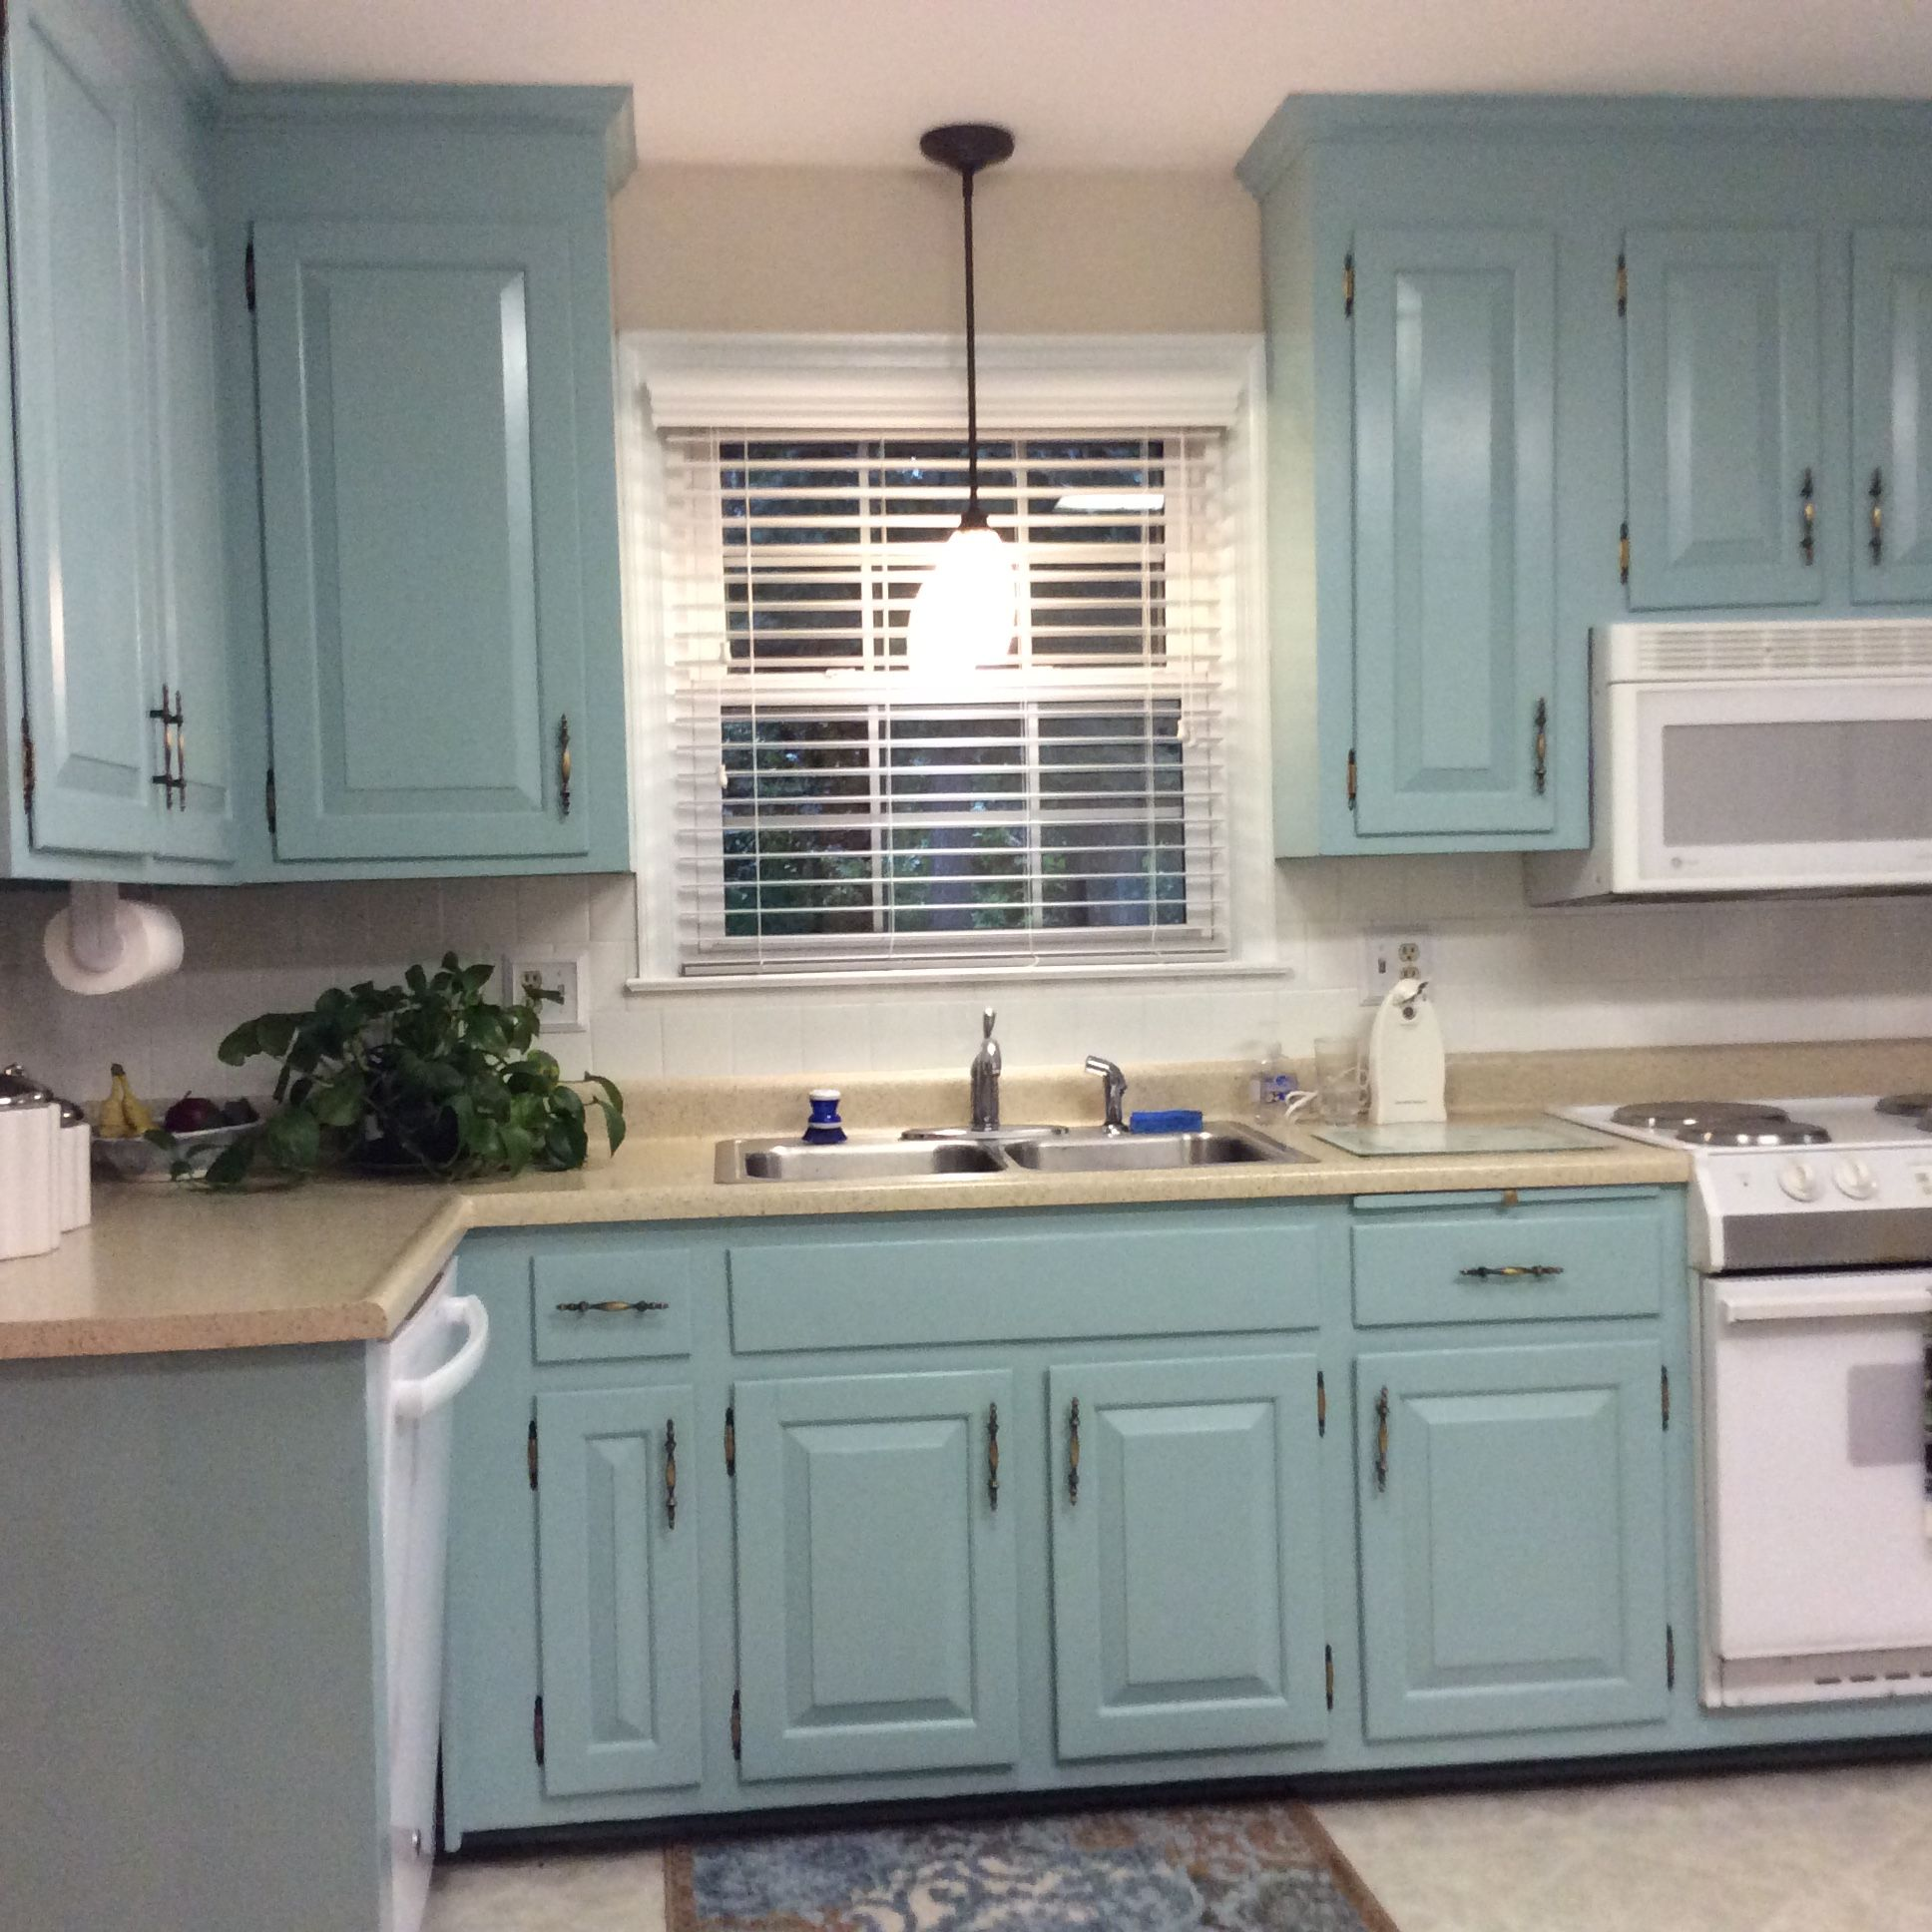 Aqua Painted Kitchen Cabinets Teal Kitchen Cabinets Teal Kitchen Kitchen Cabinets